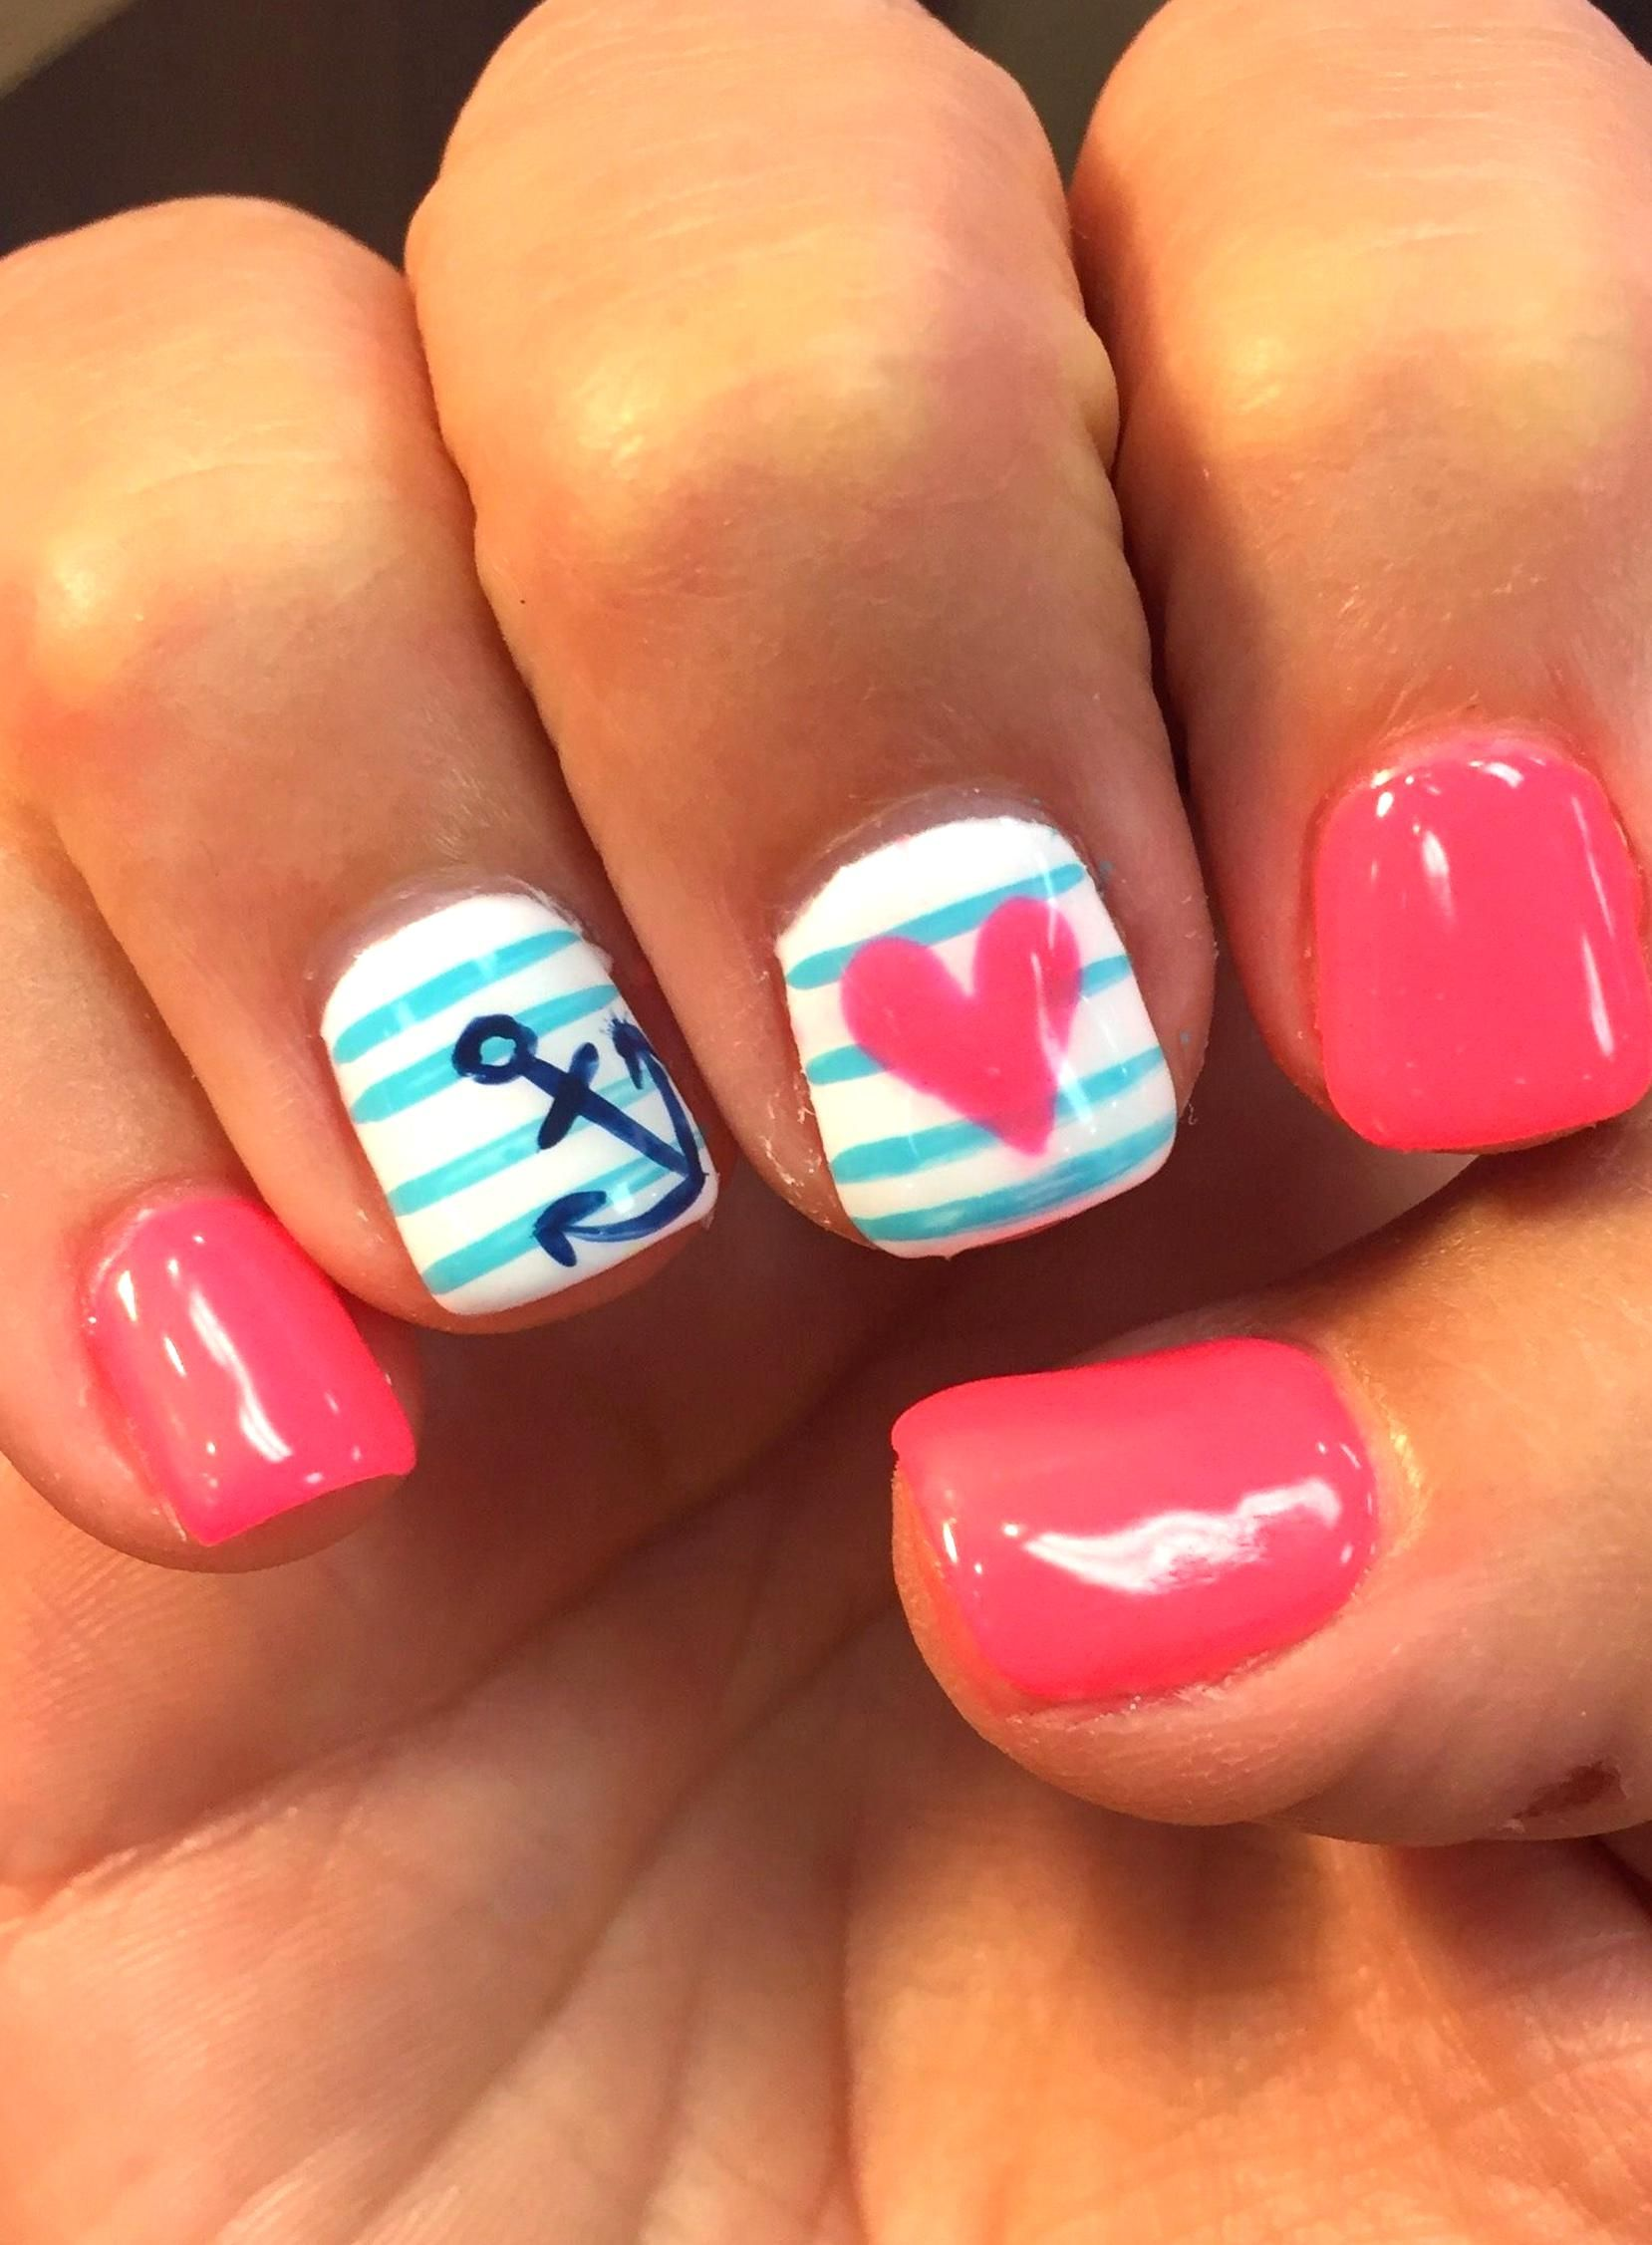 Gel Nail Ideas For Summer Fresh Summer Nails Design Anchor Pink June Gel Nail Mani Heart In 2020 Nail Designs Summer Cute Summer Nails Nail Designs Summer Gel